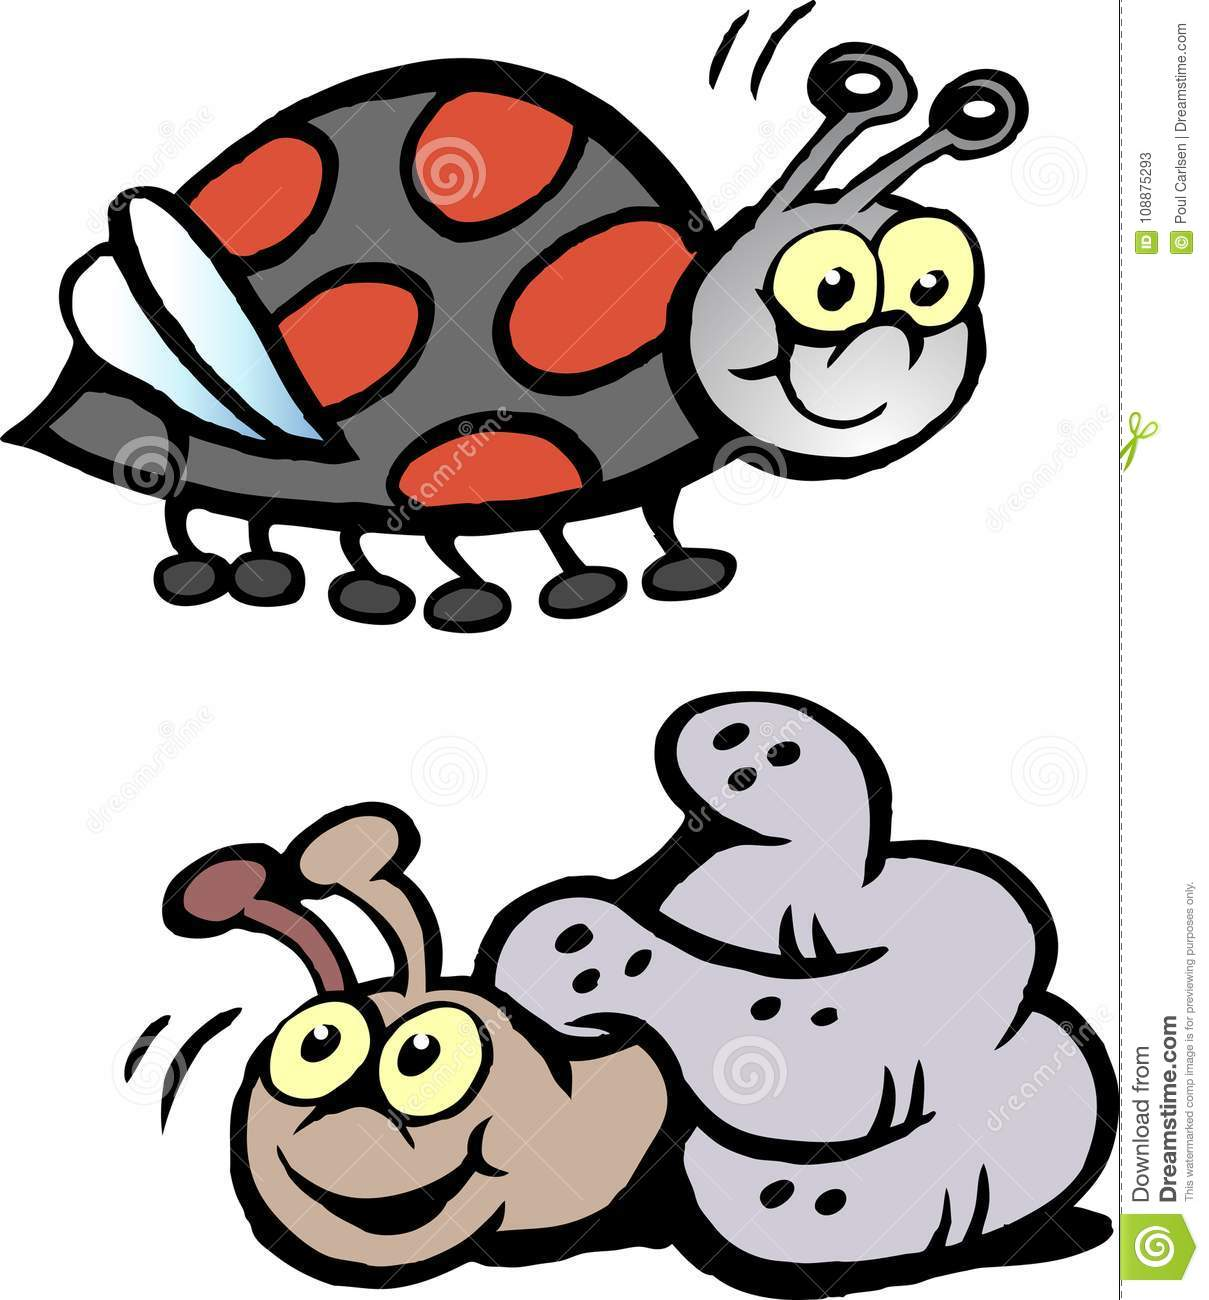 hight resolution of cartoon vector illustration of a ladybug and a snail